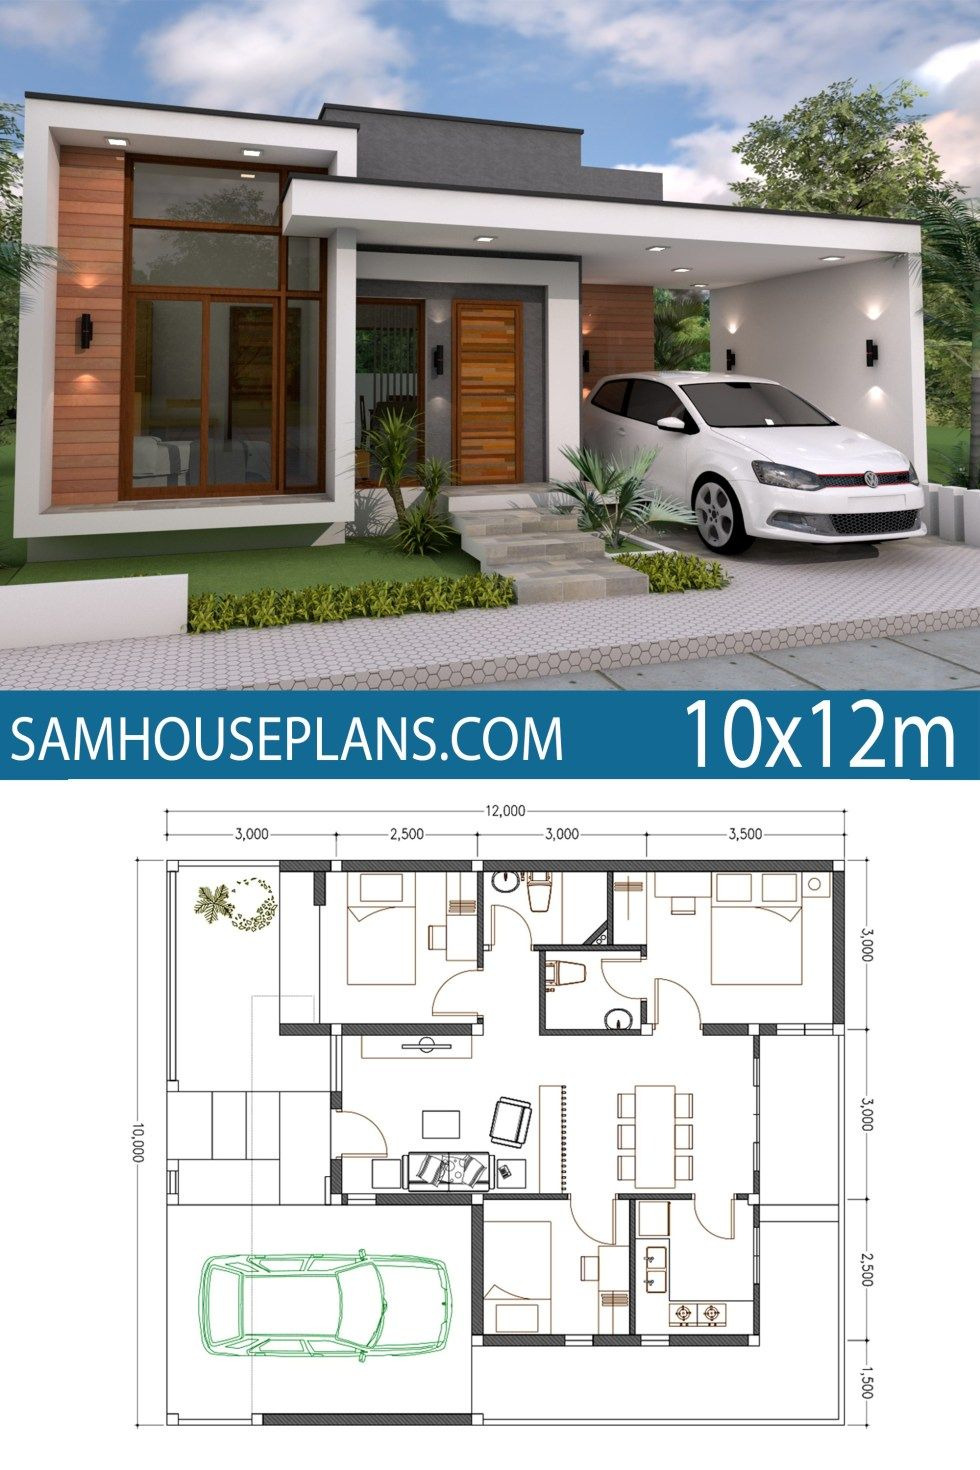 Architecture Simple House Designs Elegant Home Plan 10x12m 3 Bedrooms In 2020